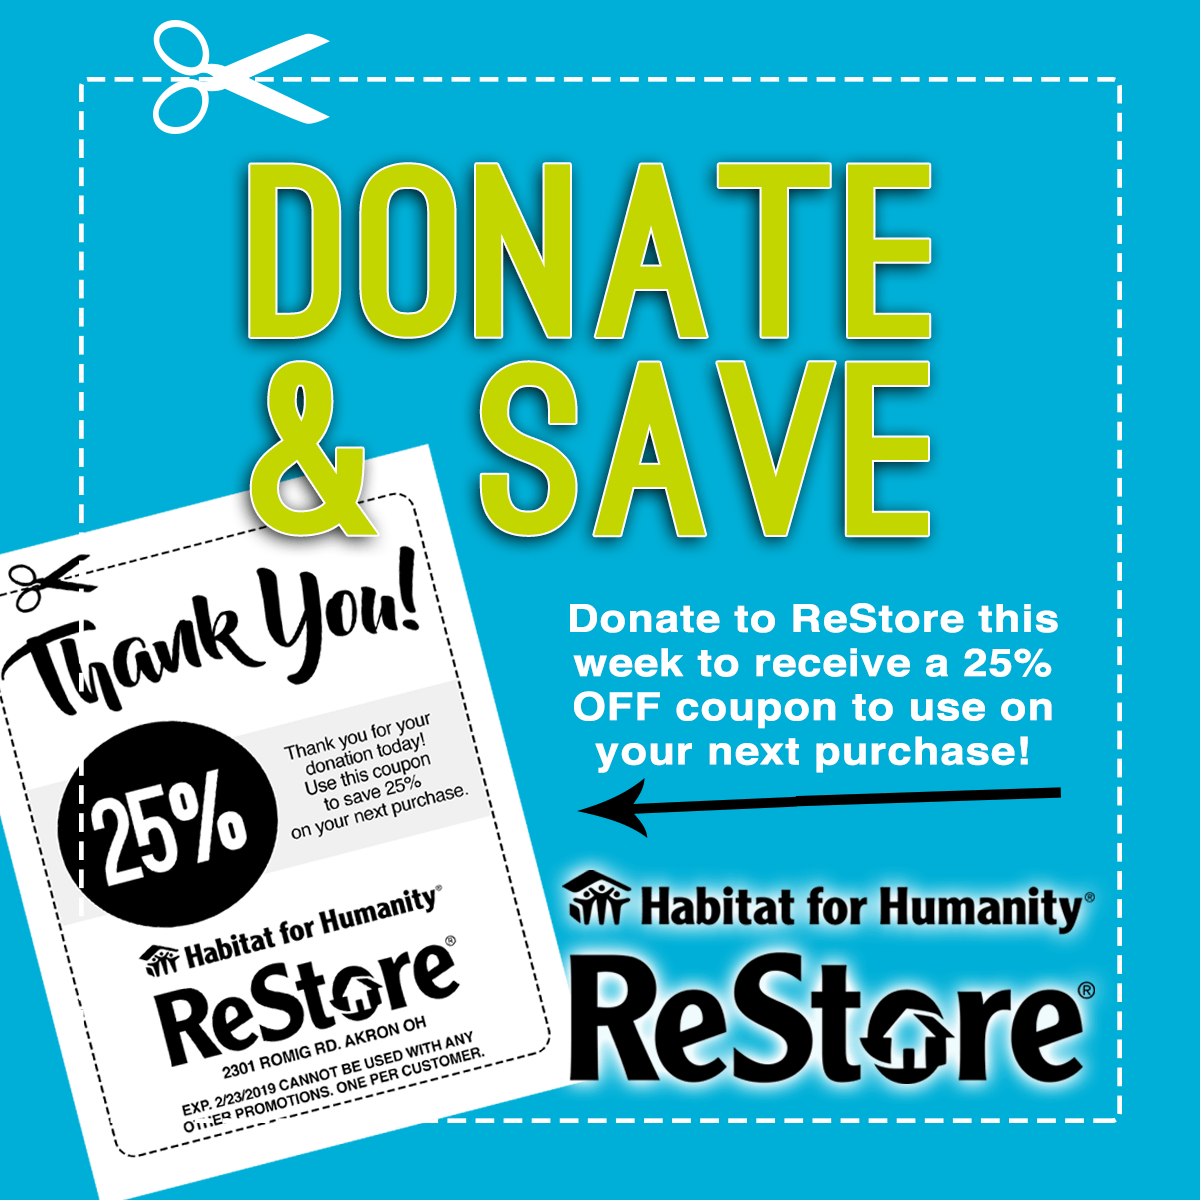 Get a 25% off Coupon when you donate an item to the ReStore!